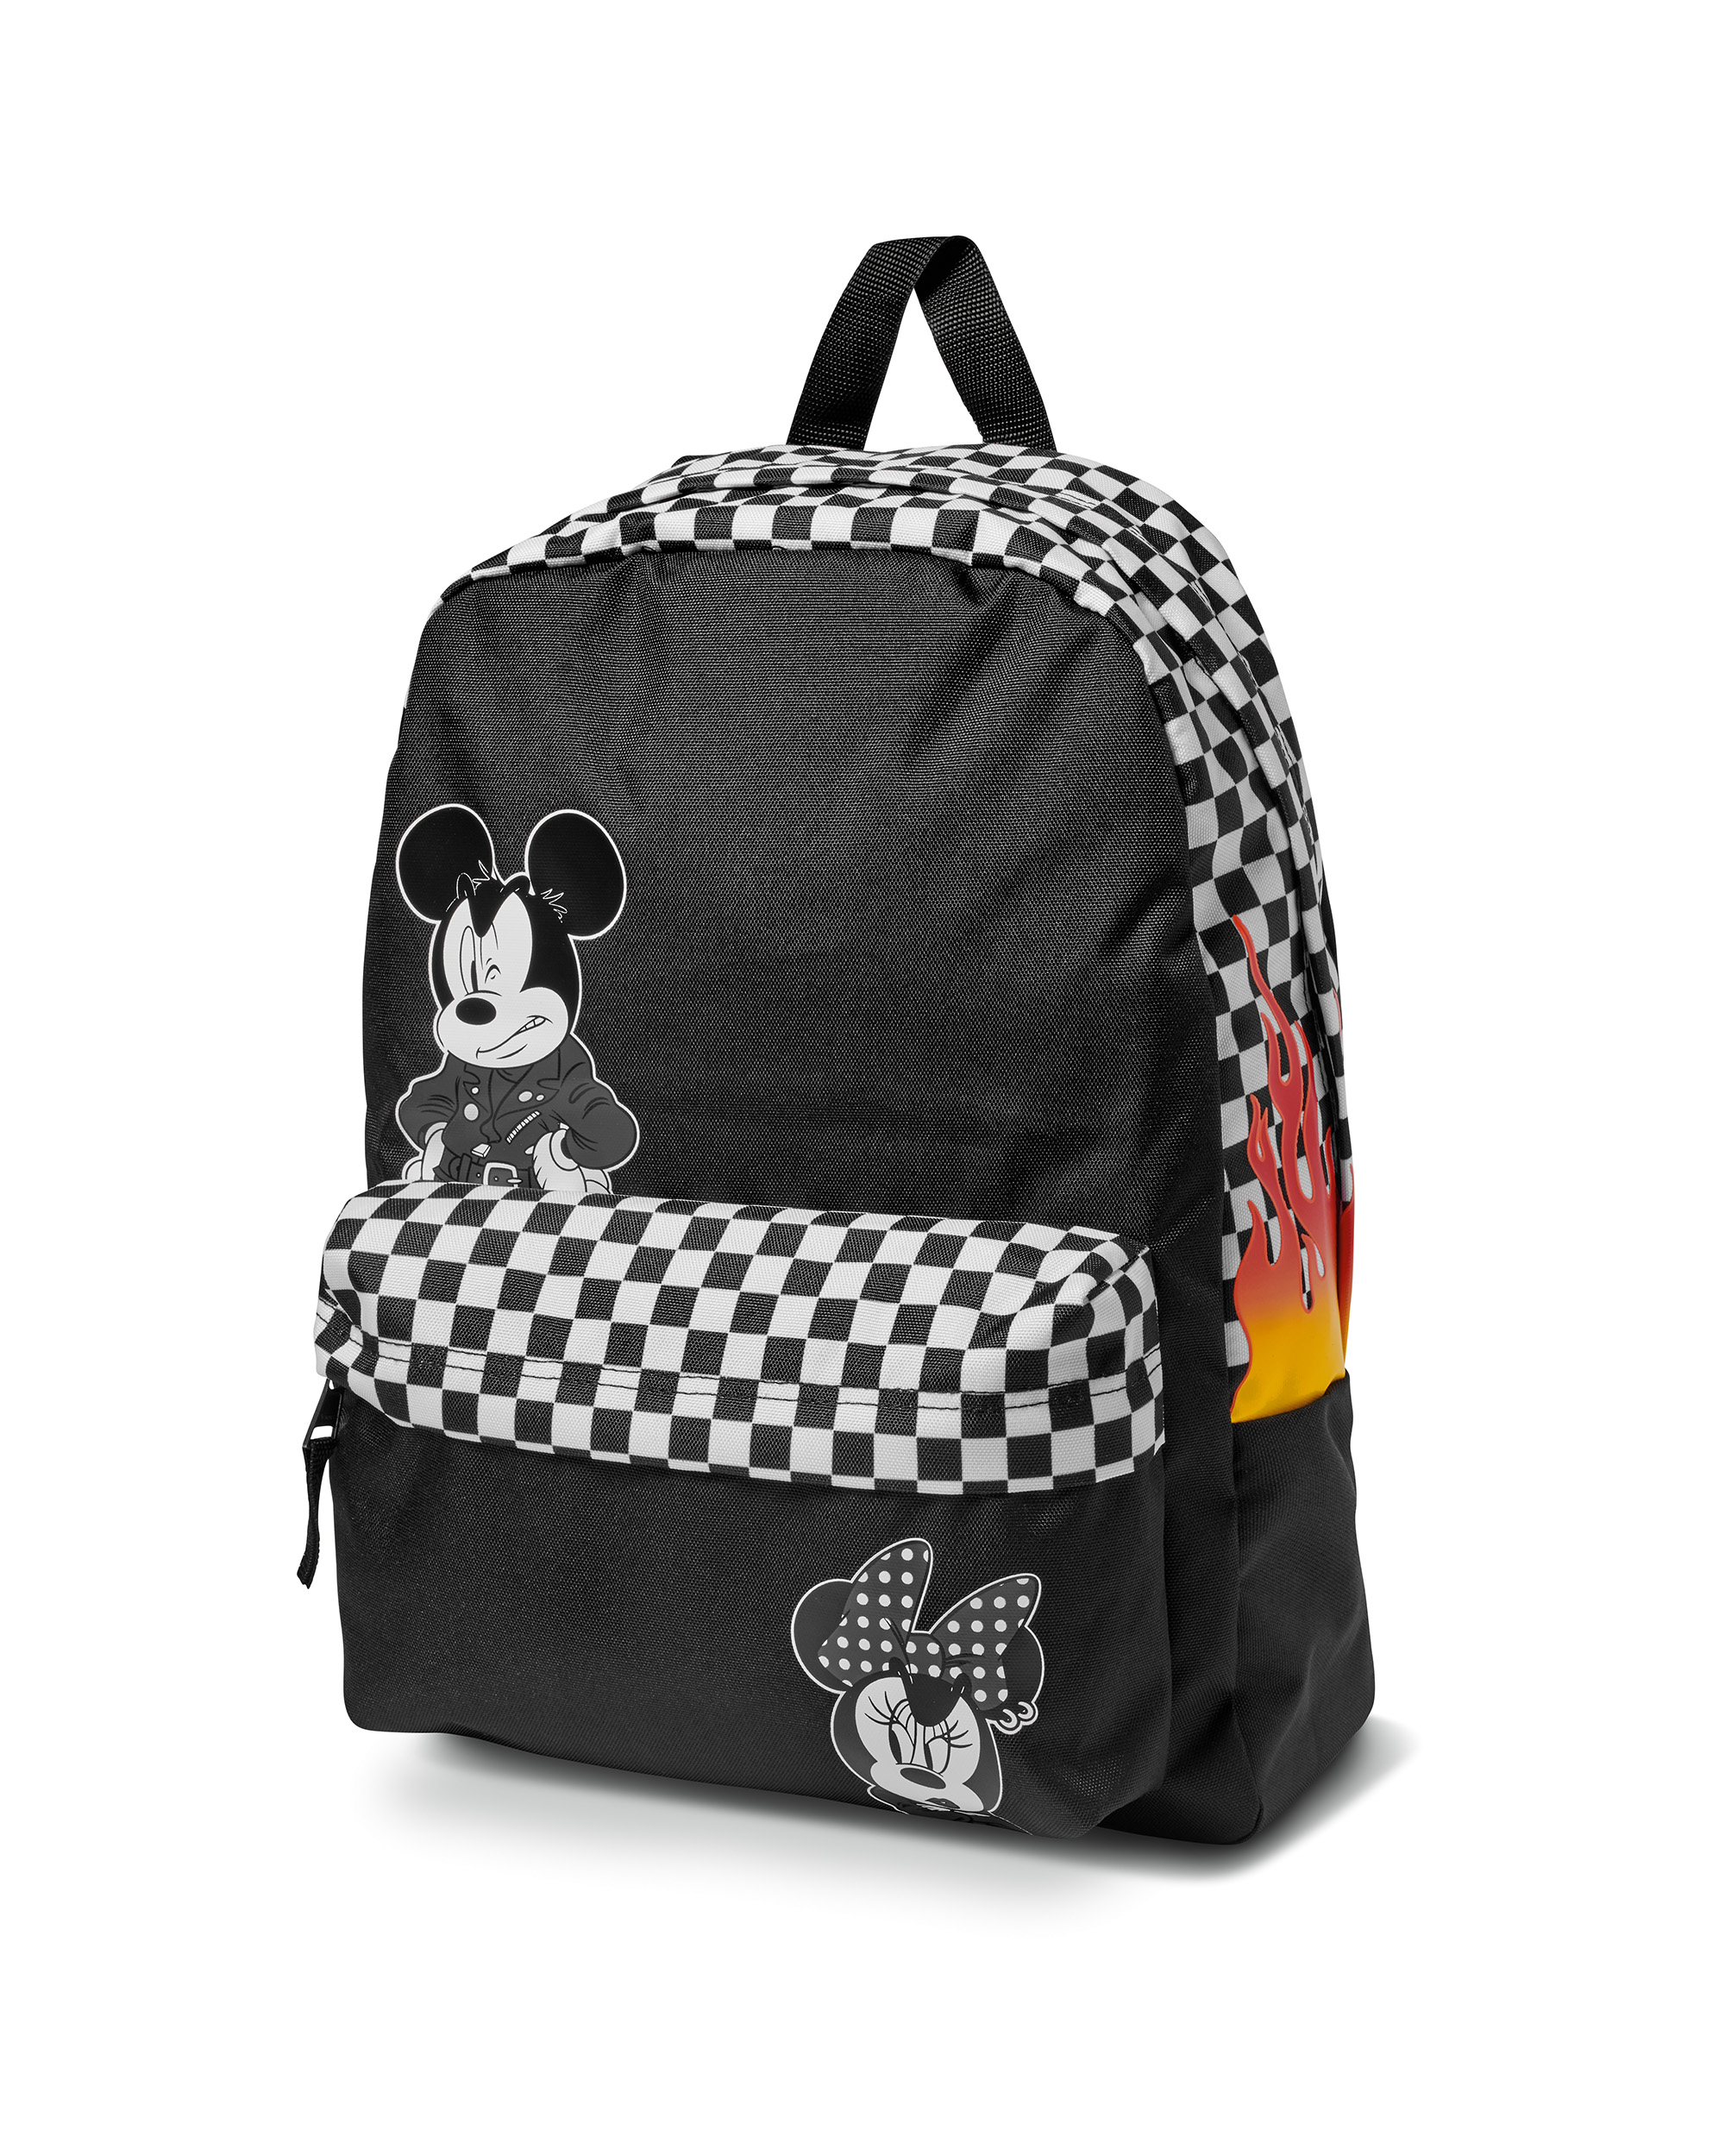 PUNK MICKEY REALM BACKPACK (Disney)